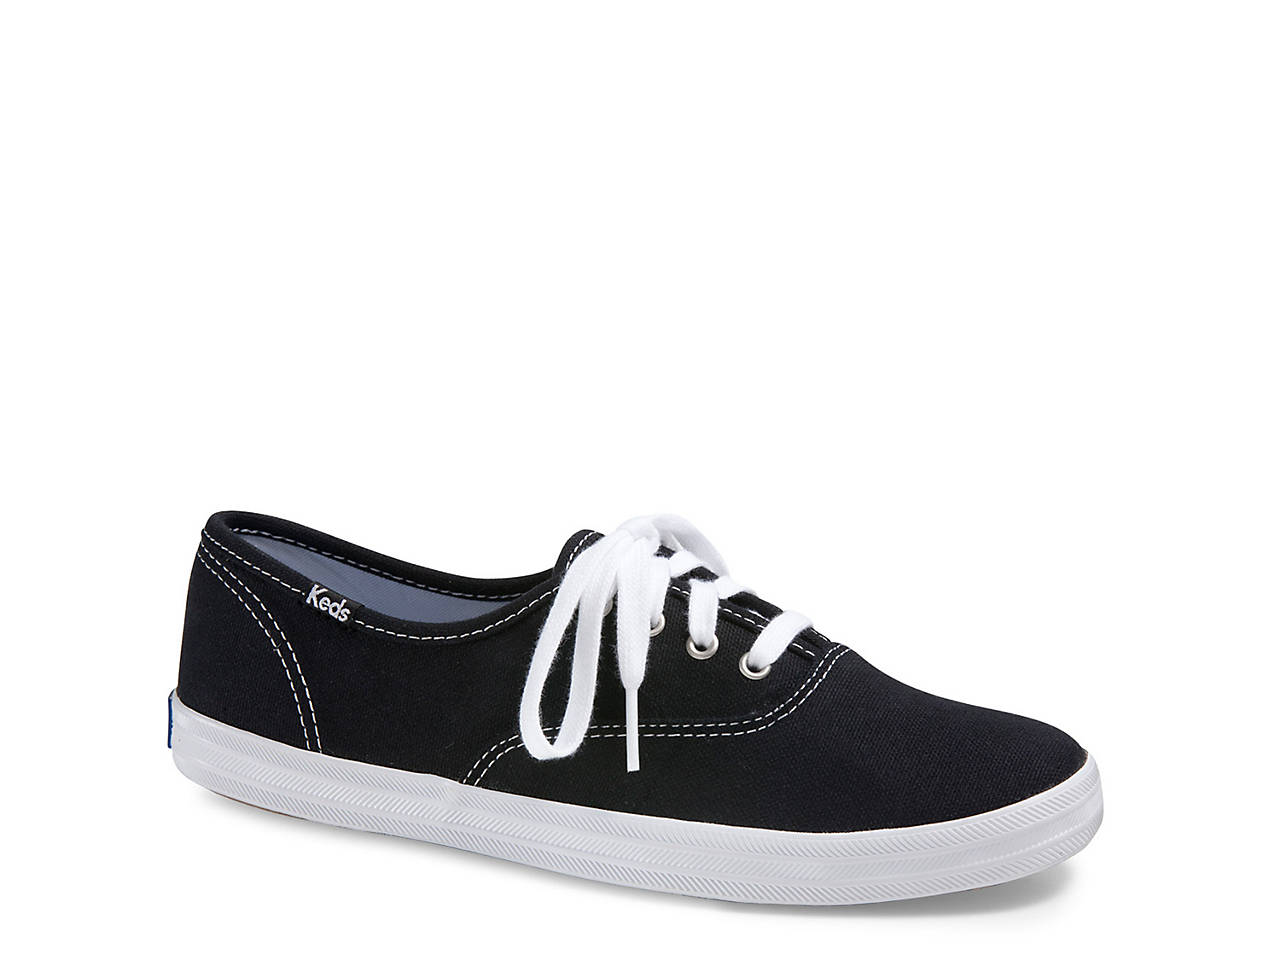 a897fb46e6401 Keds Champion Sneaker - Women s Women s Shoes